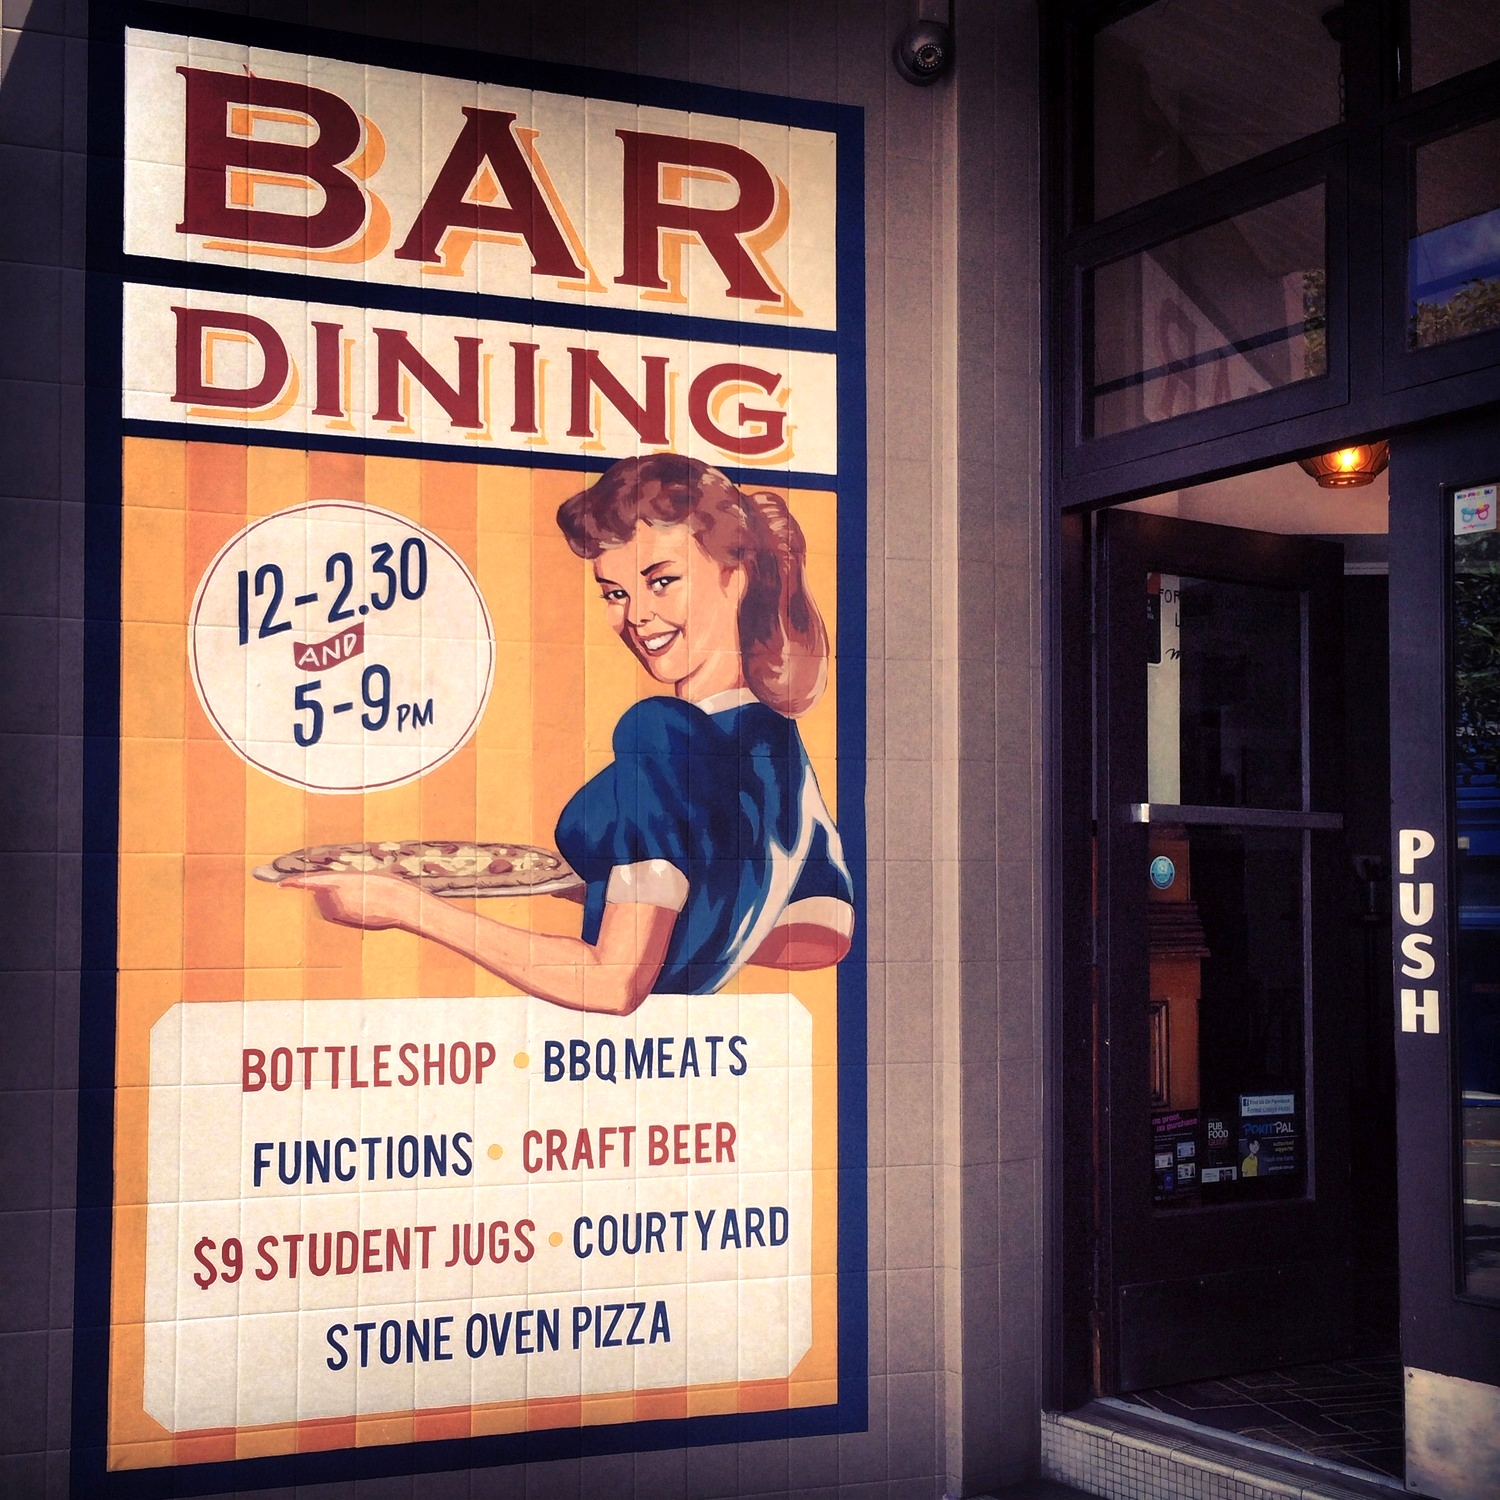 bar and dining mural.JPG